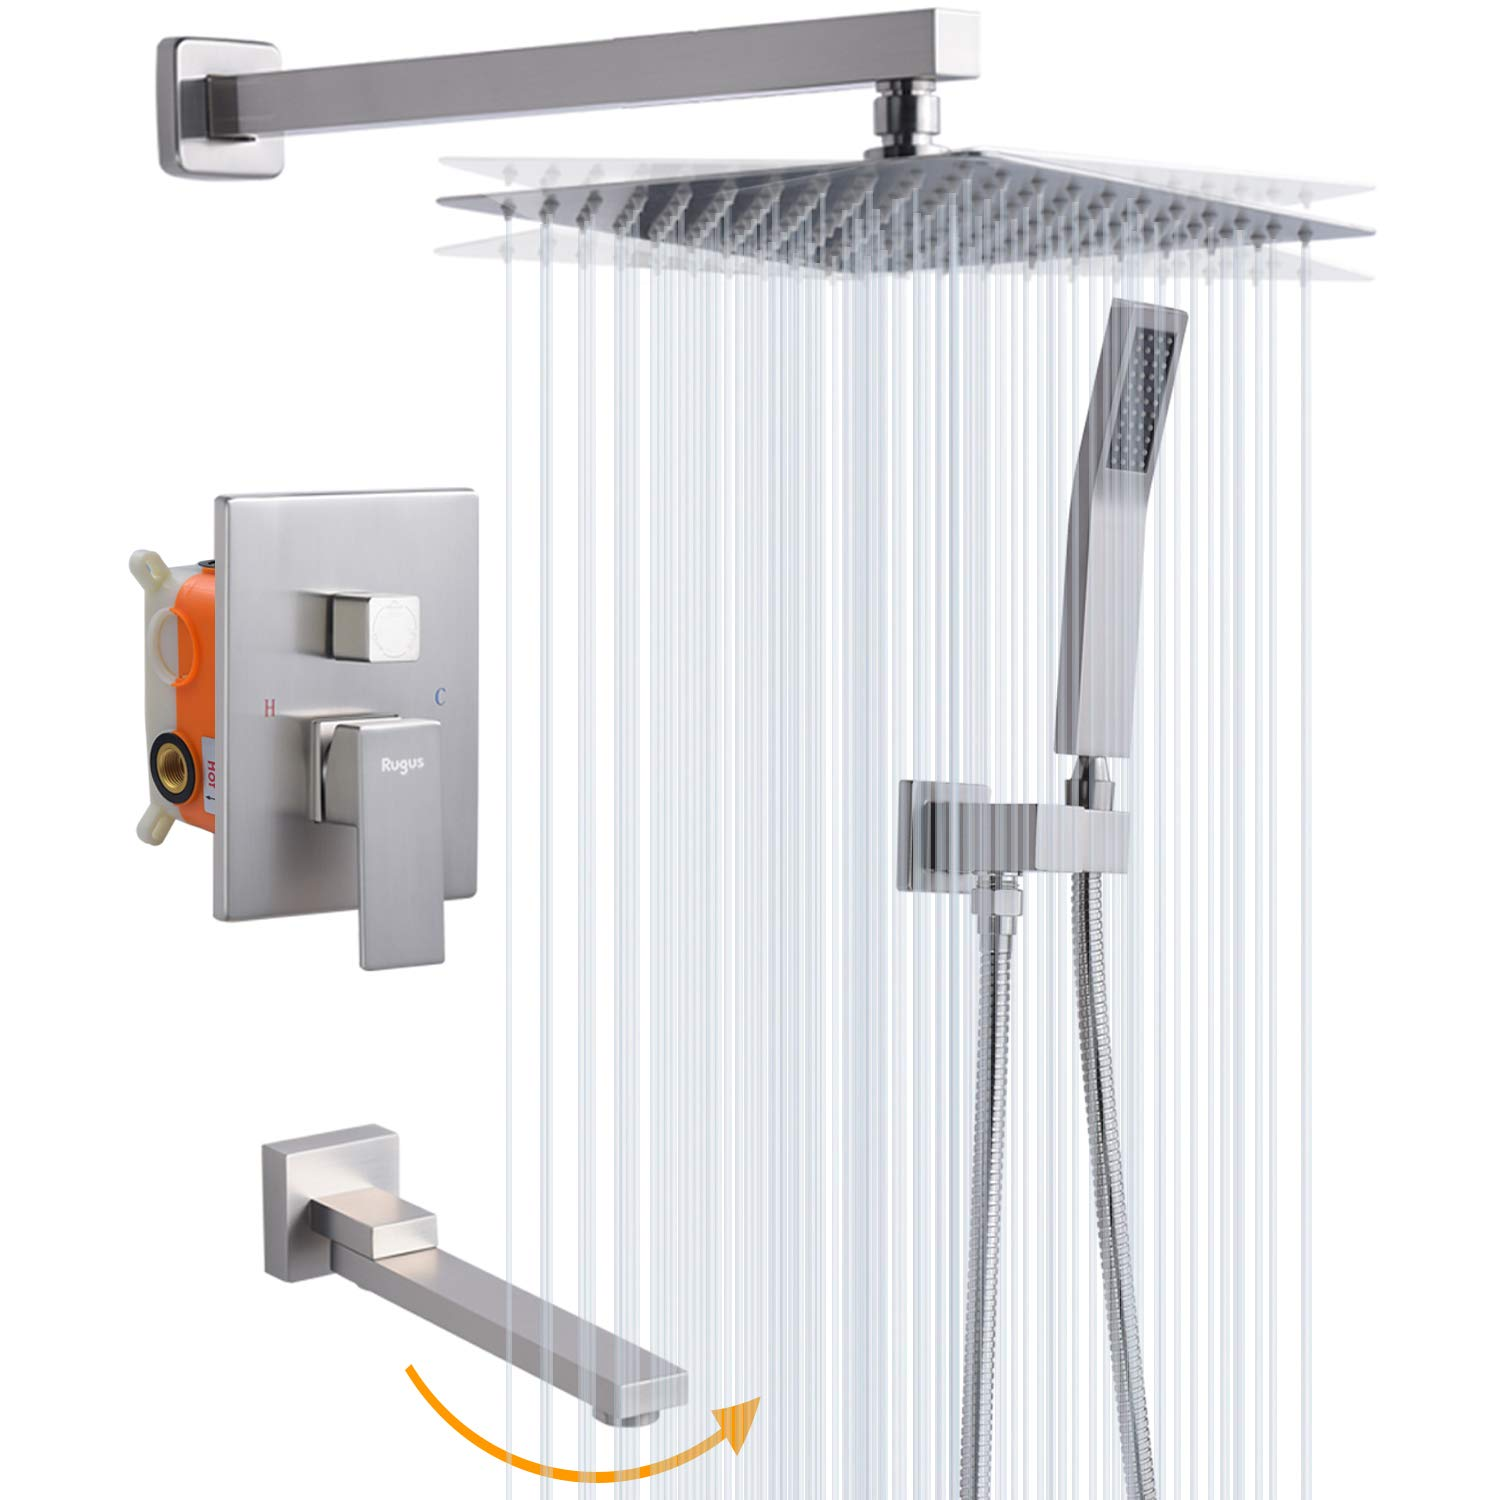 rugus shower system luxury rain mixer shower tub spout combo set wall mounted rainfall shower head system 12 inch square rain shower head brushed